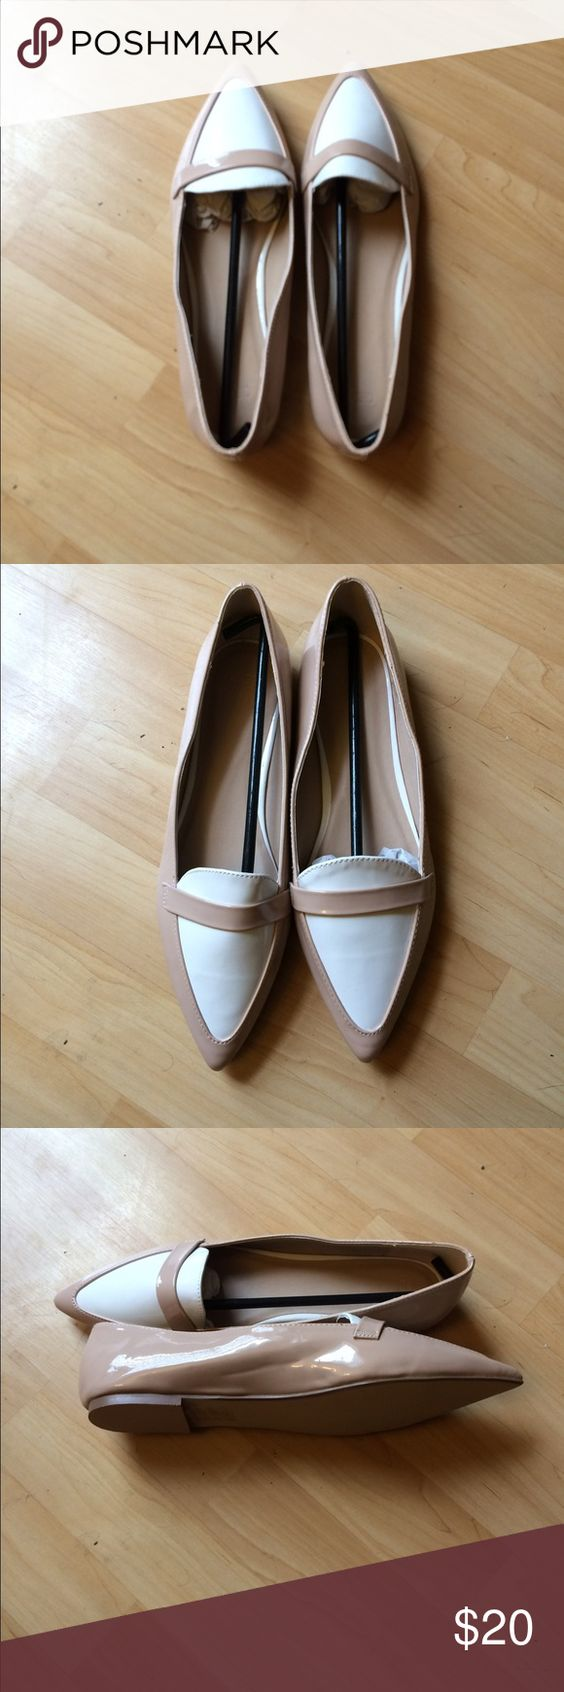 NWT Asos Leigh ballet flats NWT Asos Leigh pointed toe ballet flats. Brand new never worn. Nude and white. Size 8.5 US and size 7 GB. Man made uppers. Shiny vinyl material. Great shoes! Asos Shoes Flats & Loafers